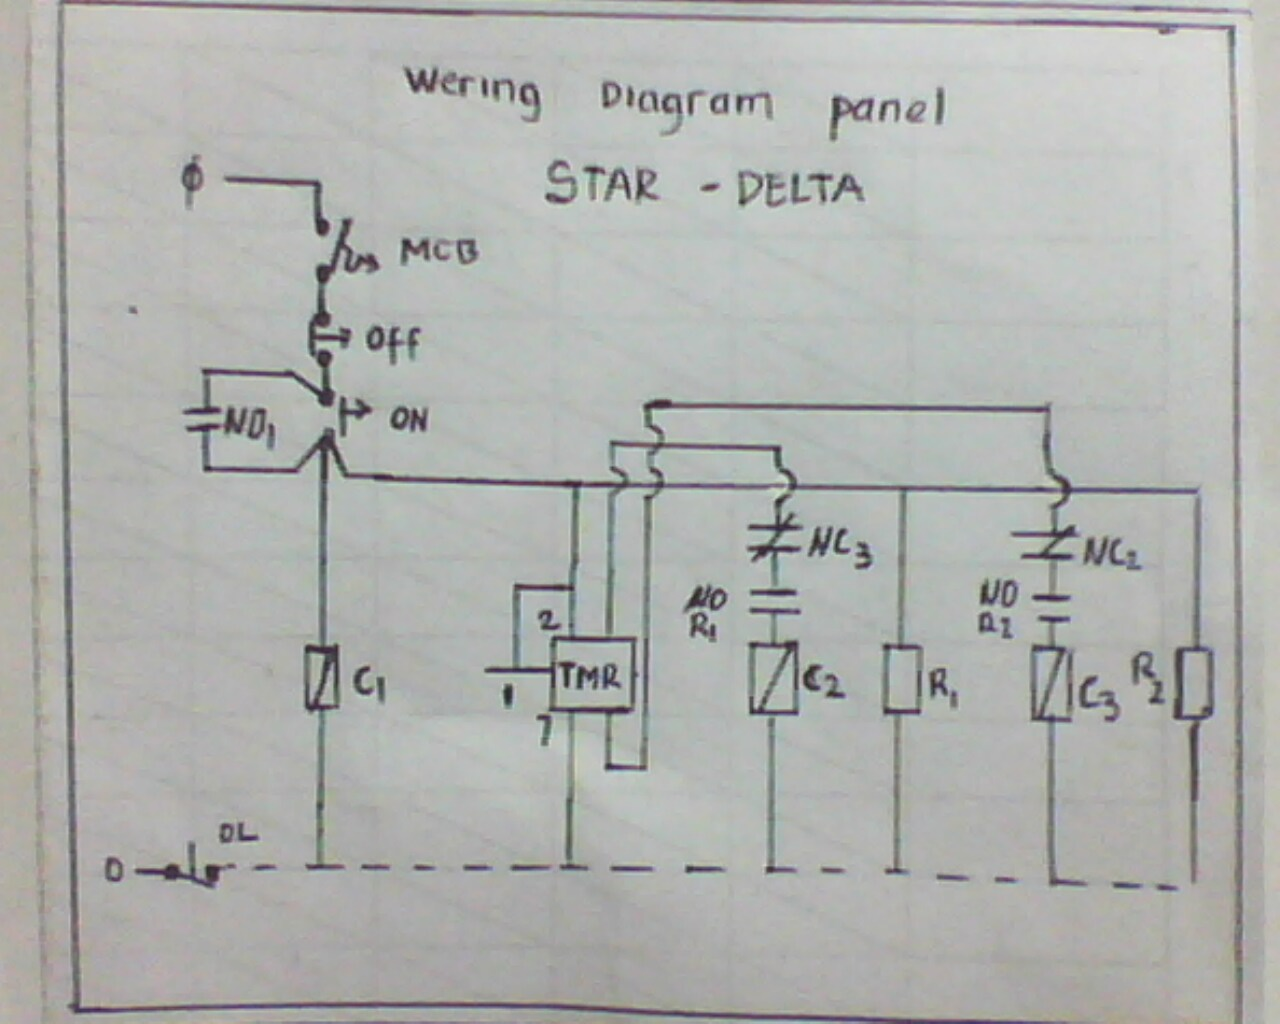 Instalasi panel listrik star delta star delta is the circuit to run the electric motor which at the time of star using a hub star star and moments later turned into a delta triangle asfbconference2016 Gallery